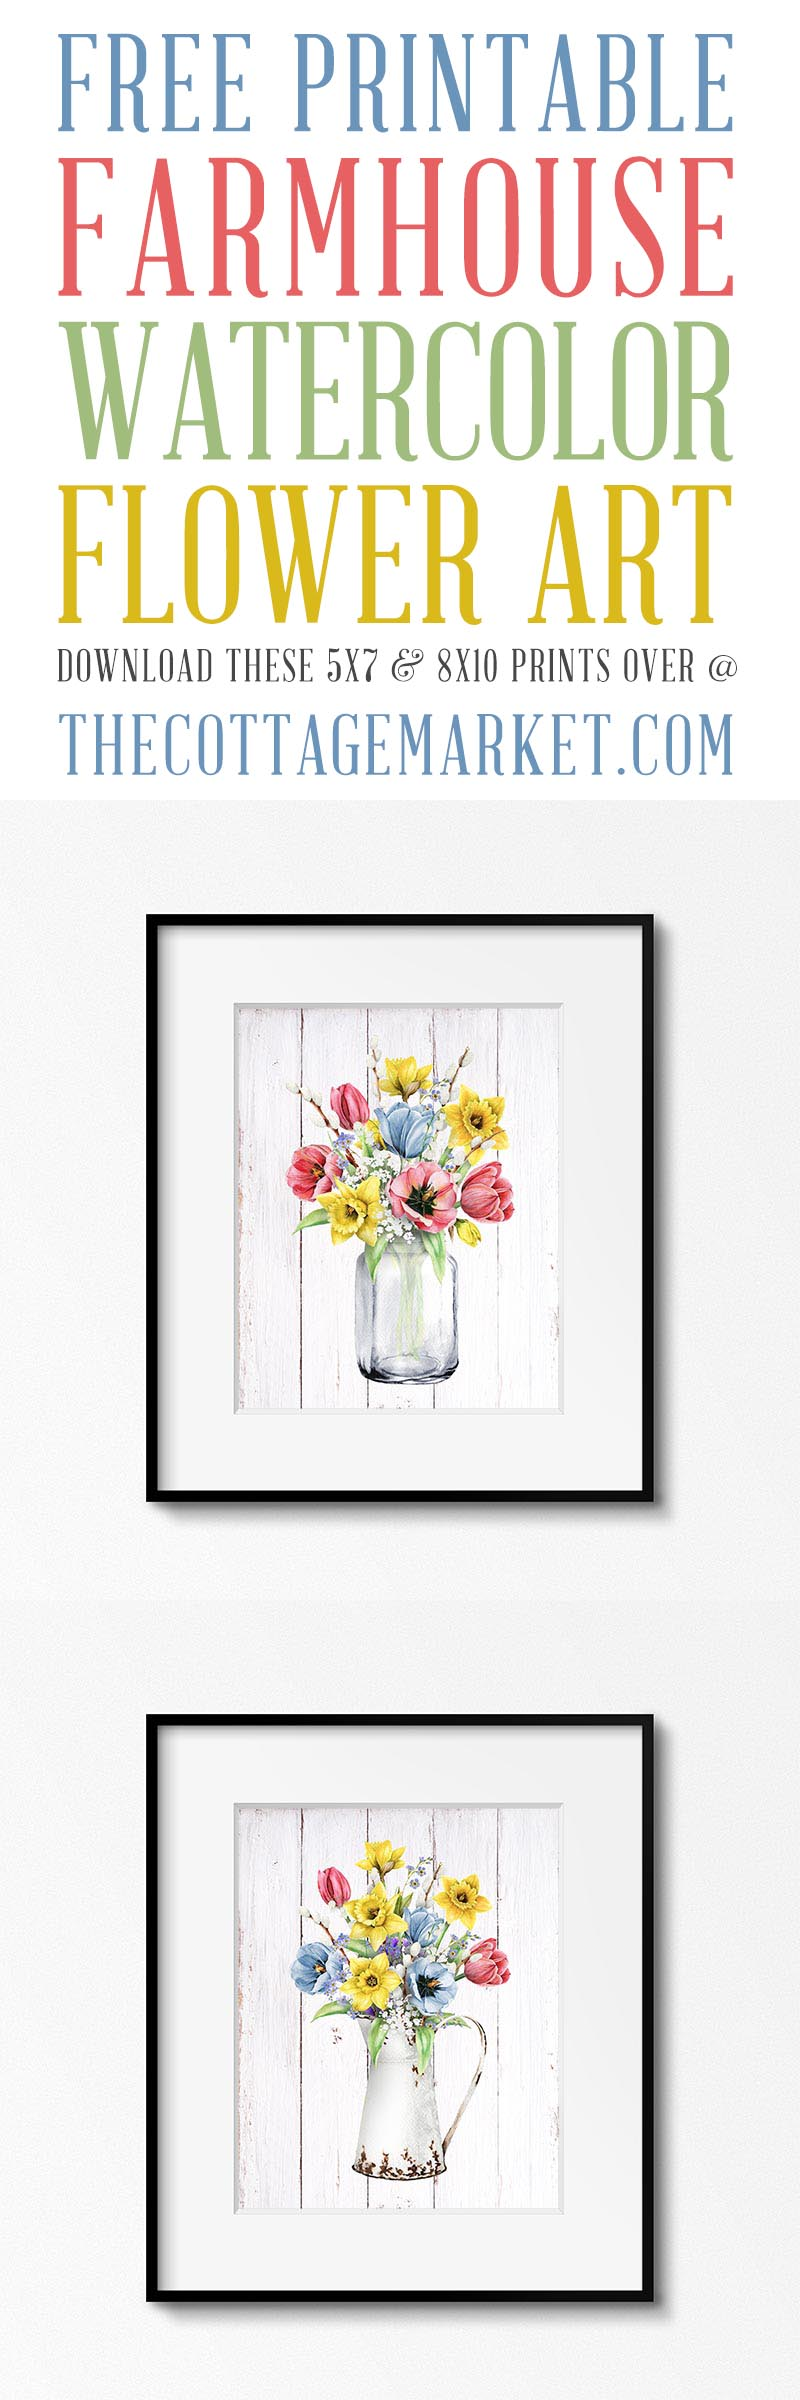 https://thecottagemarket.com/wp-content/uploads/2020/07/TCM-Farmhouse-Floral-Art-tower-1.jpg